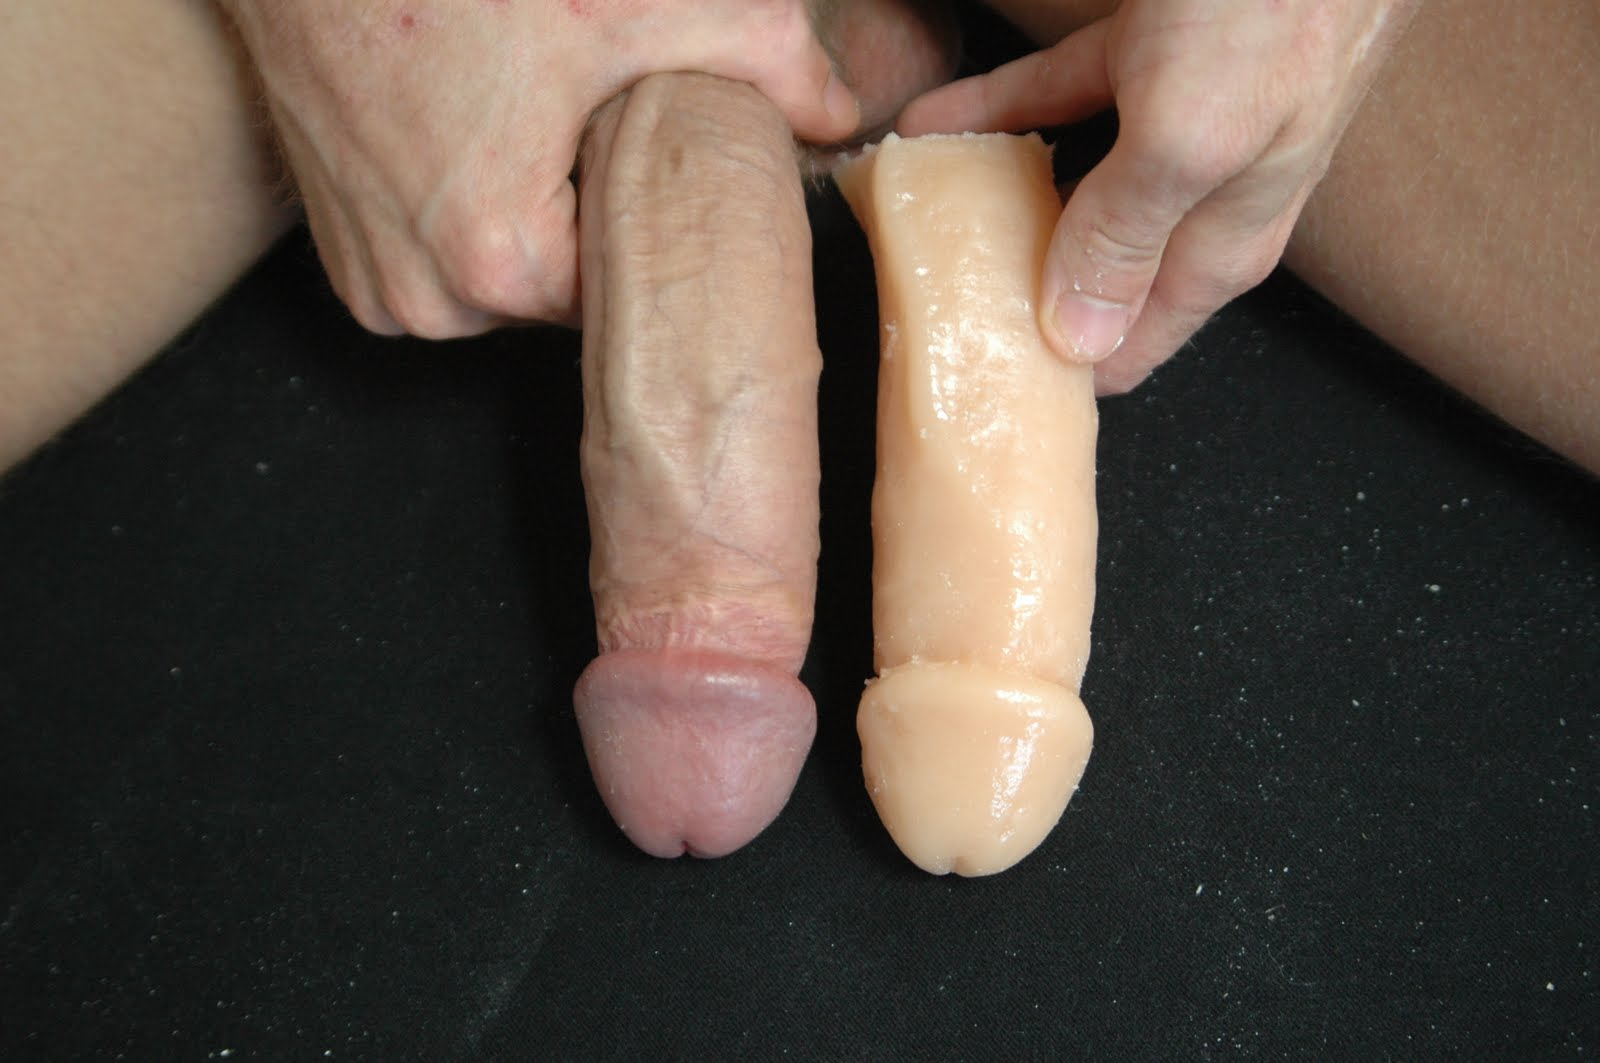 Jeff stryker dildo part 2 - 3 part 2